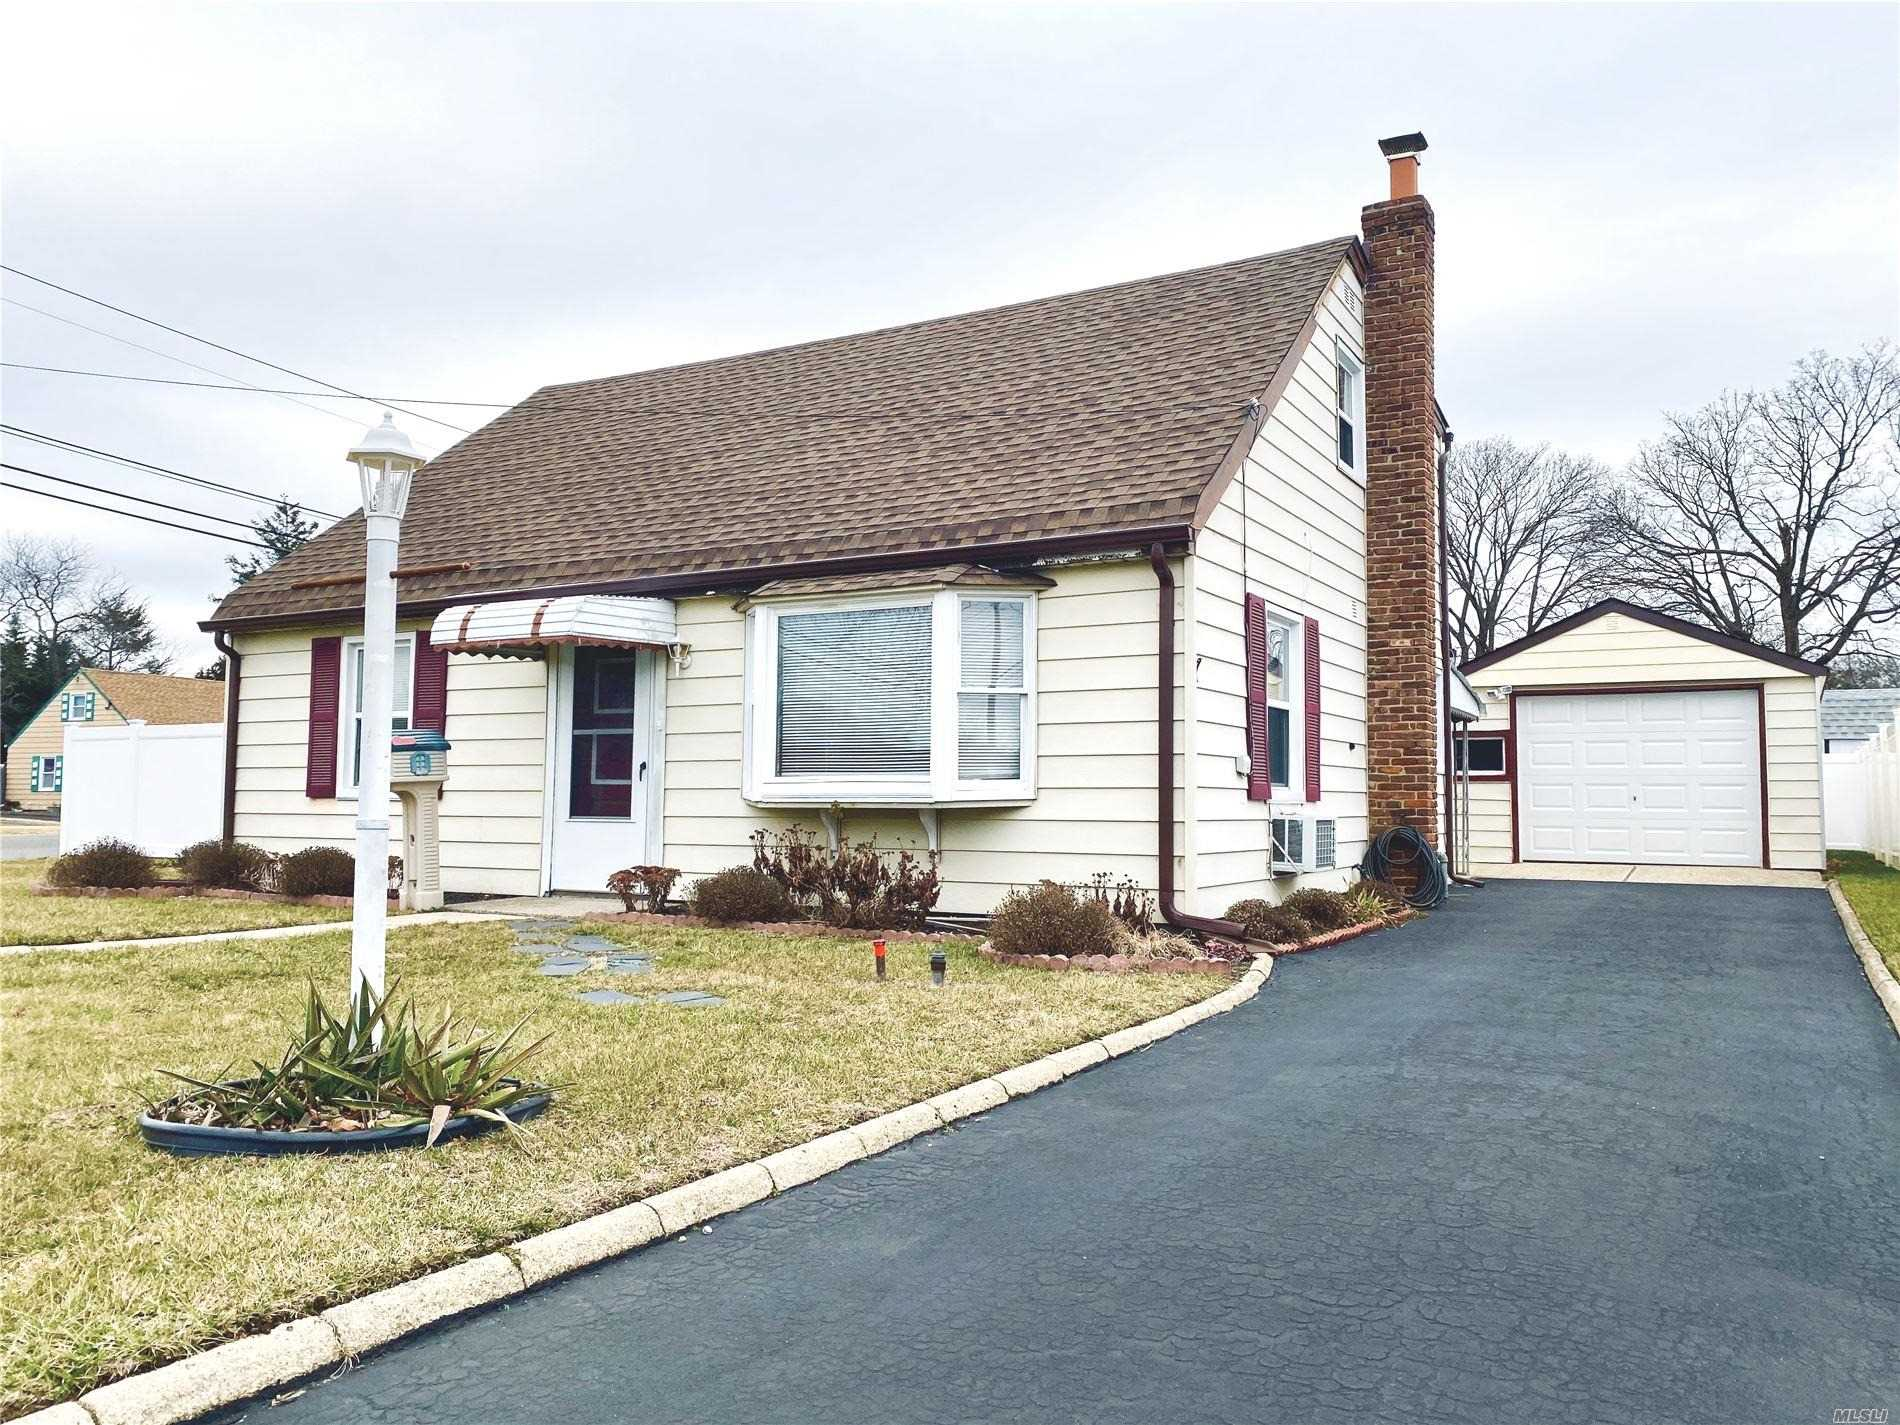 5 Birch Ct - Farmingdale, New York